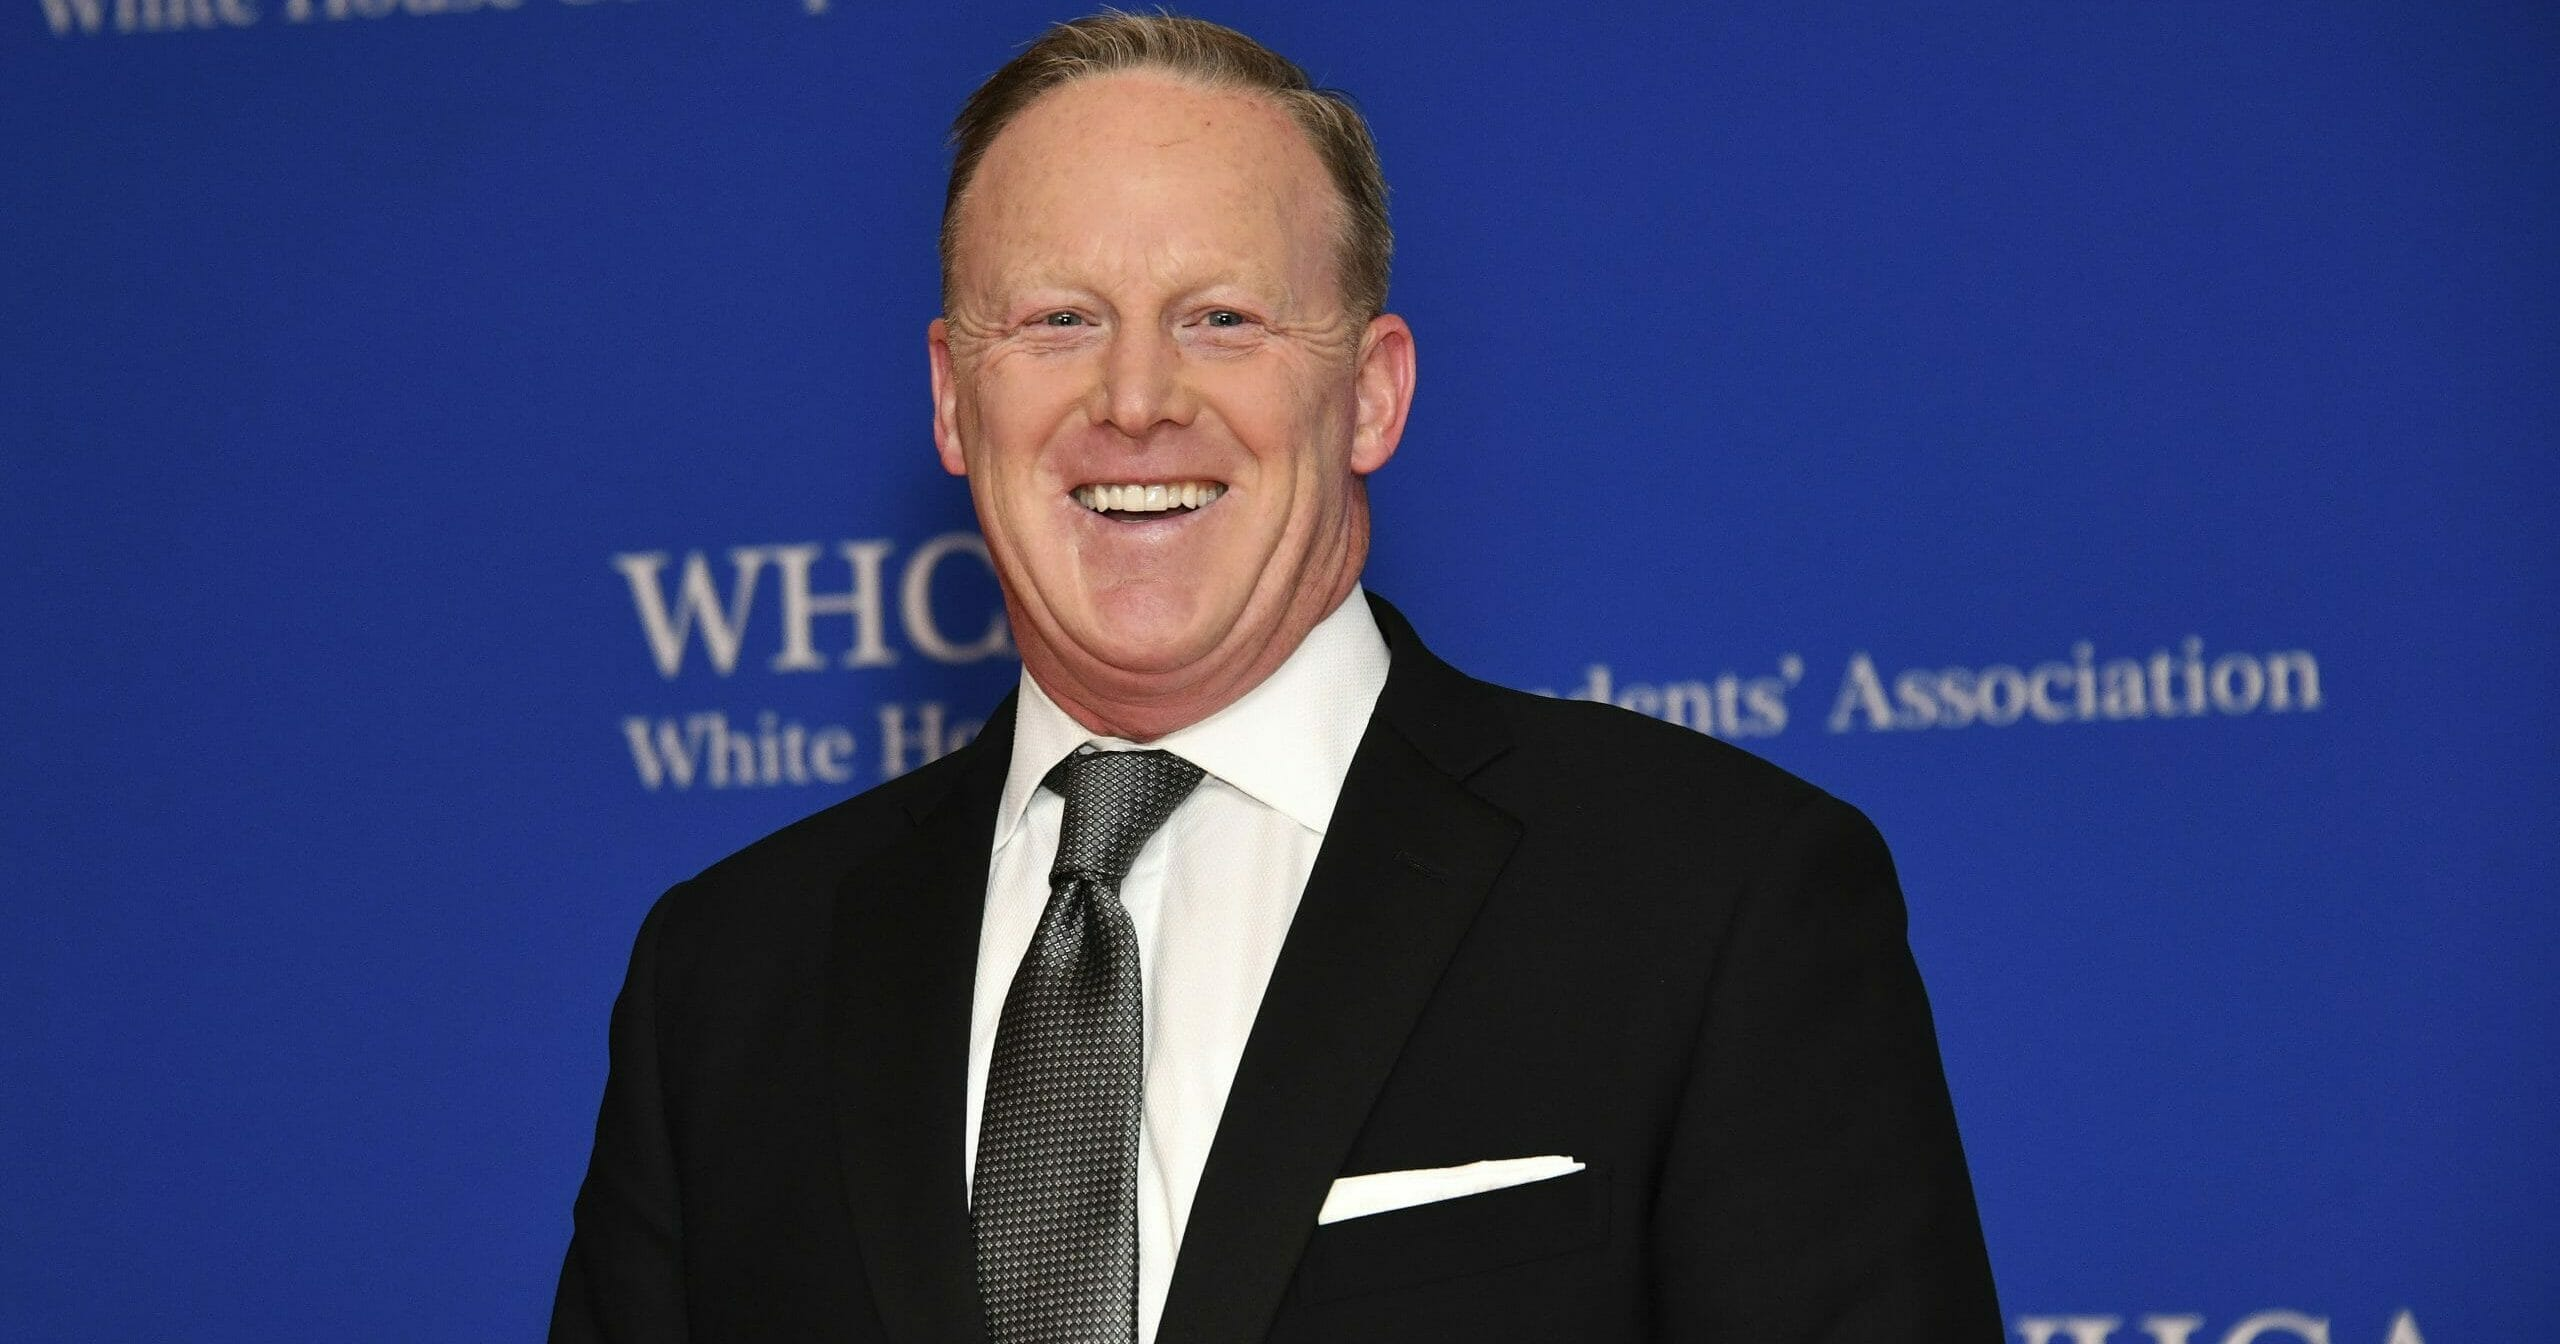 This April 27, 2019, file photo shows Sean Spicer at the 2019 White House Correspondents' Association dinner in Washington, D.C.